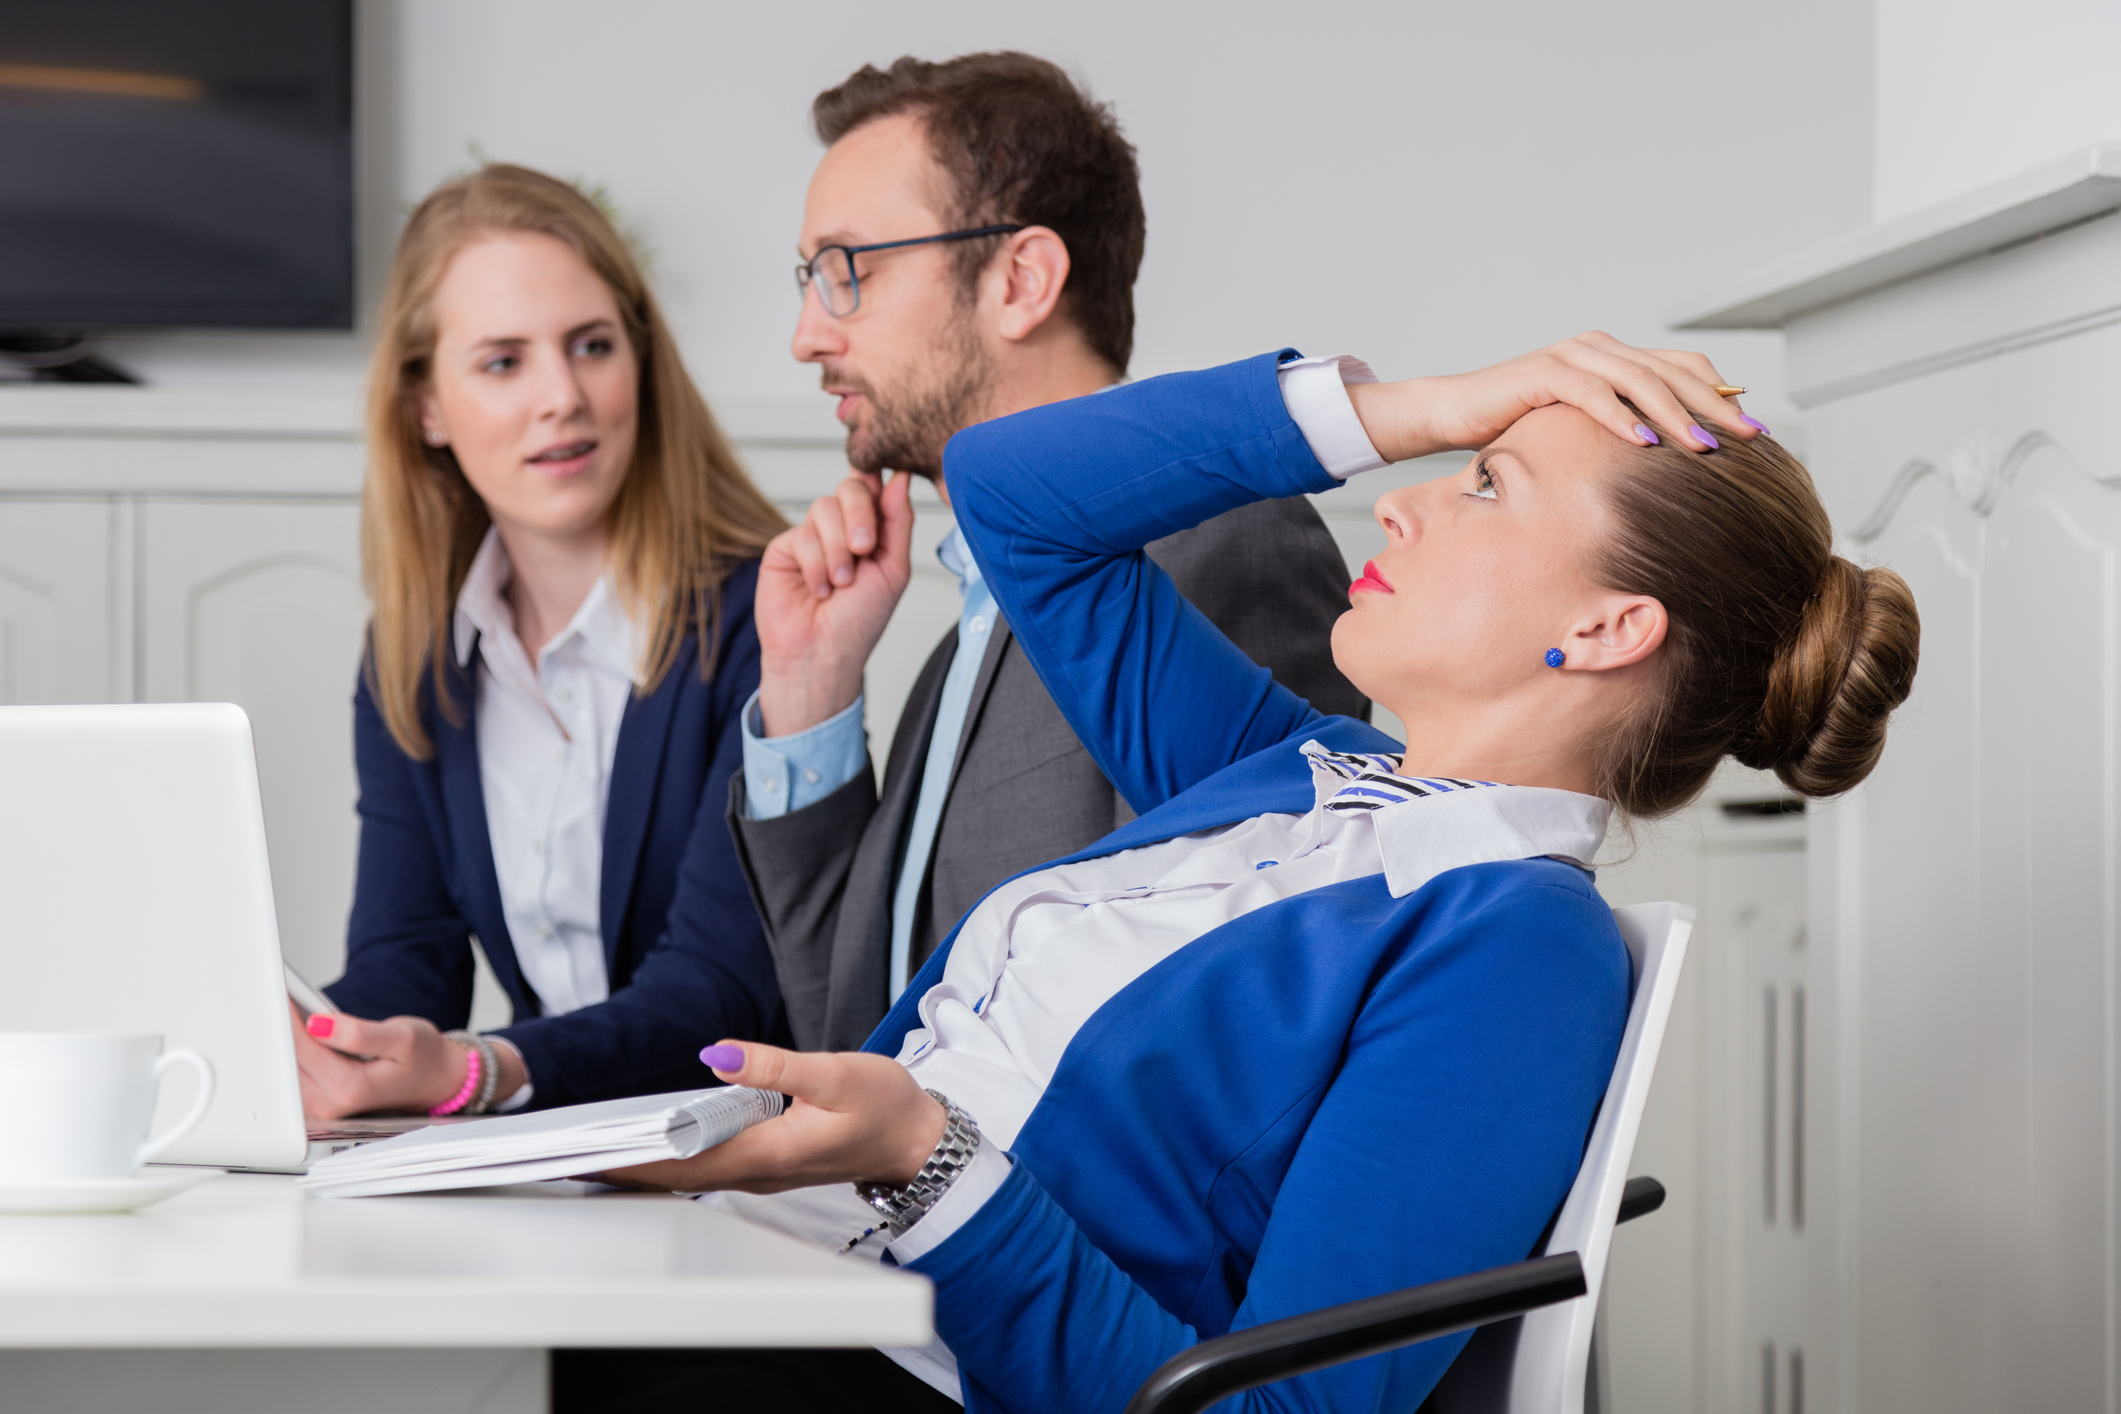 Are You a Bad Communicator or is the Other Person a Bad Listener? Or Both?